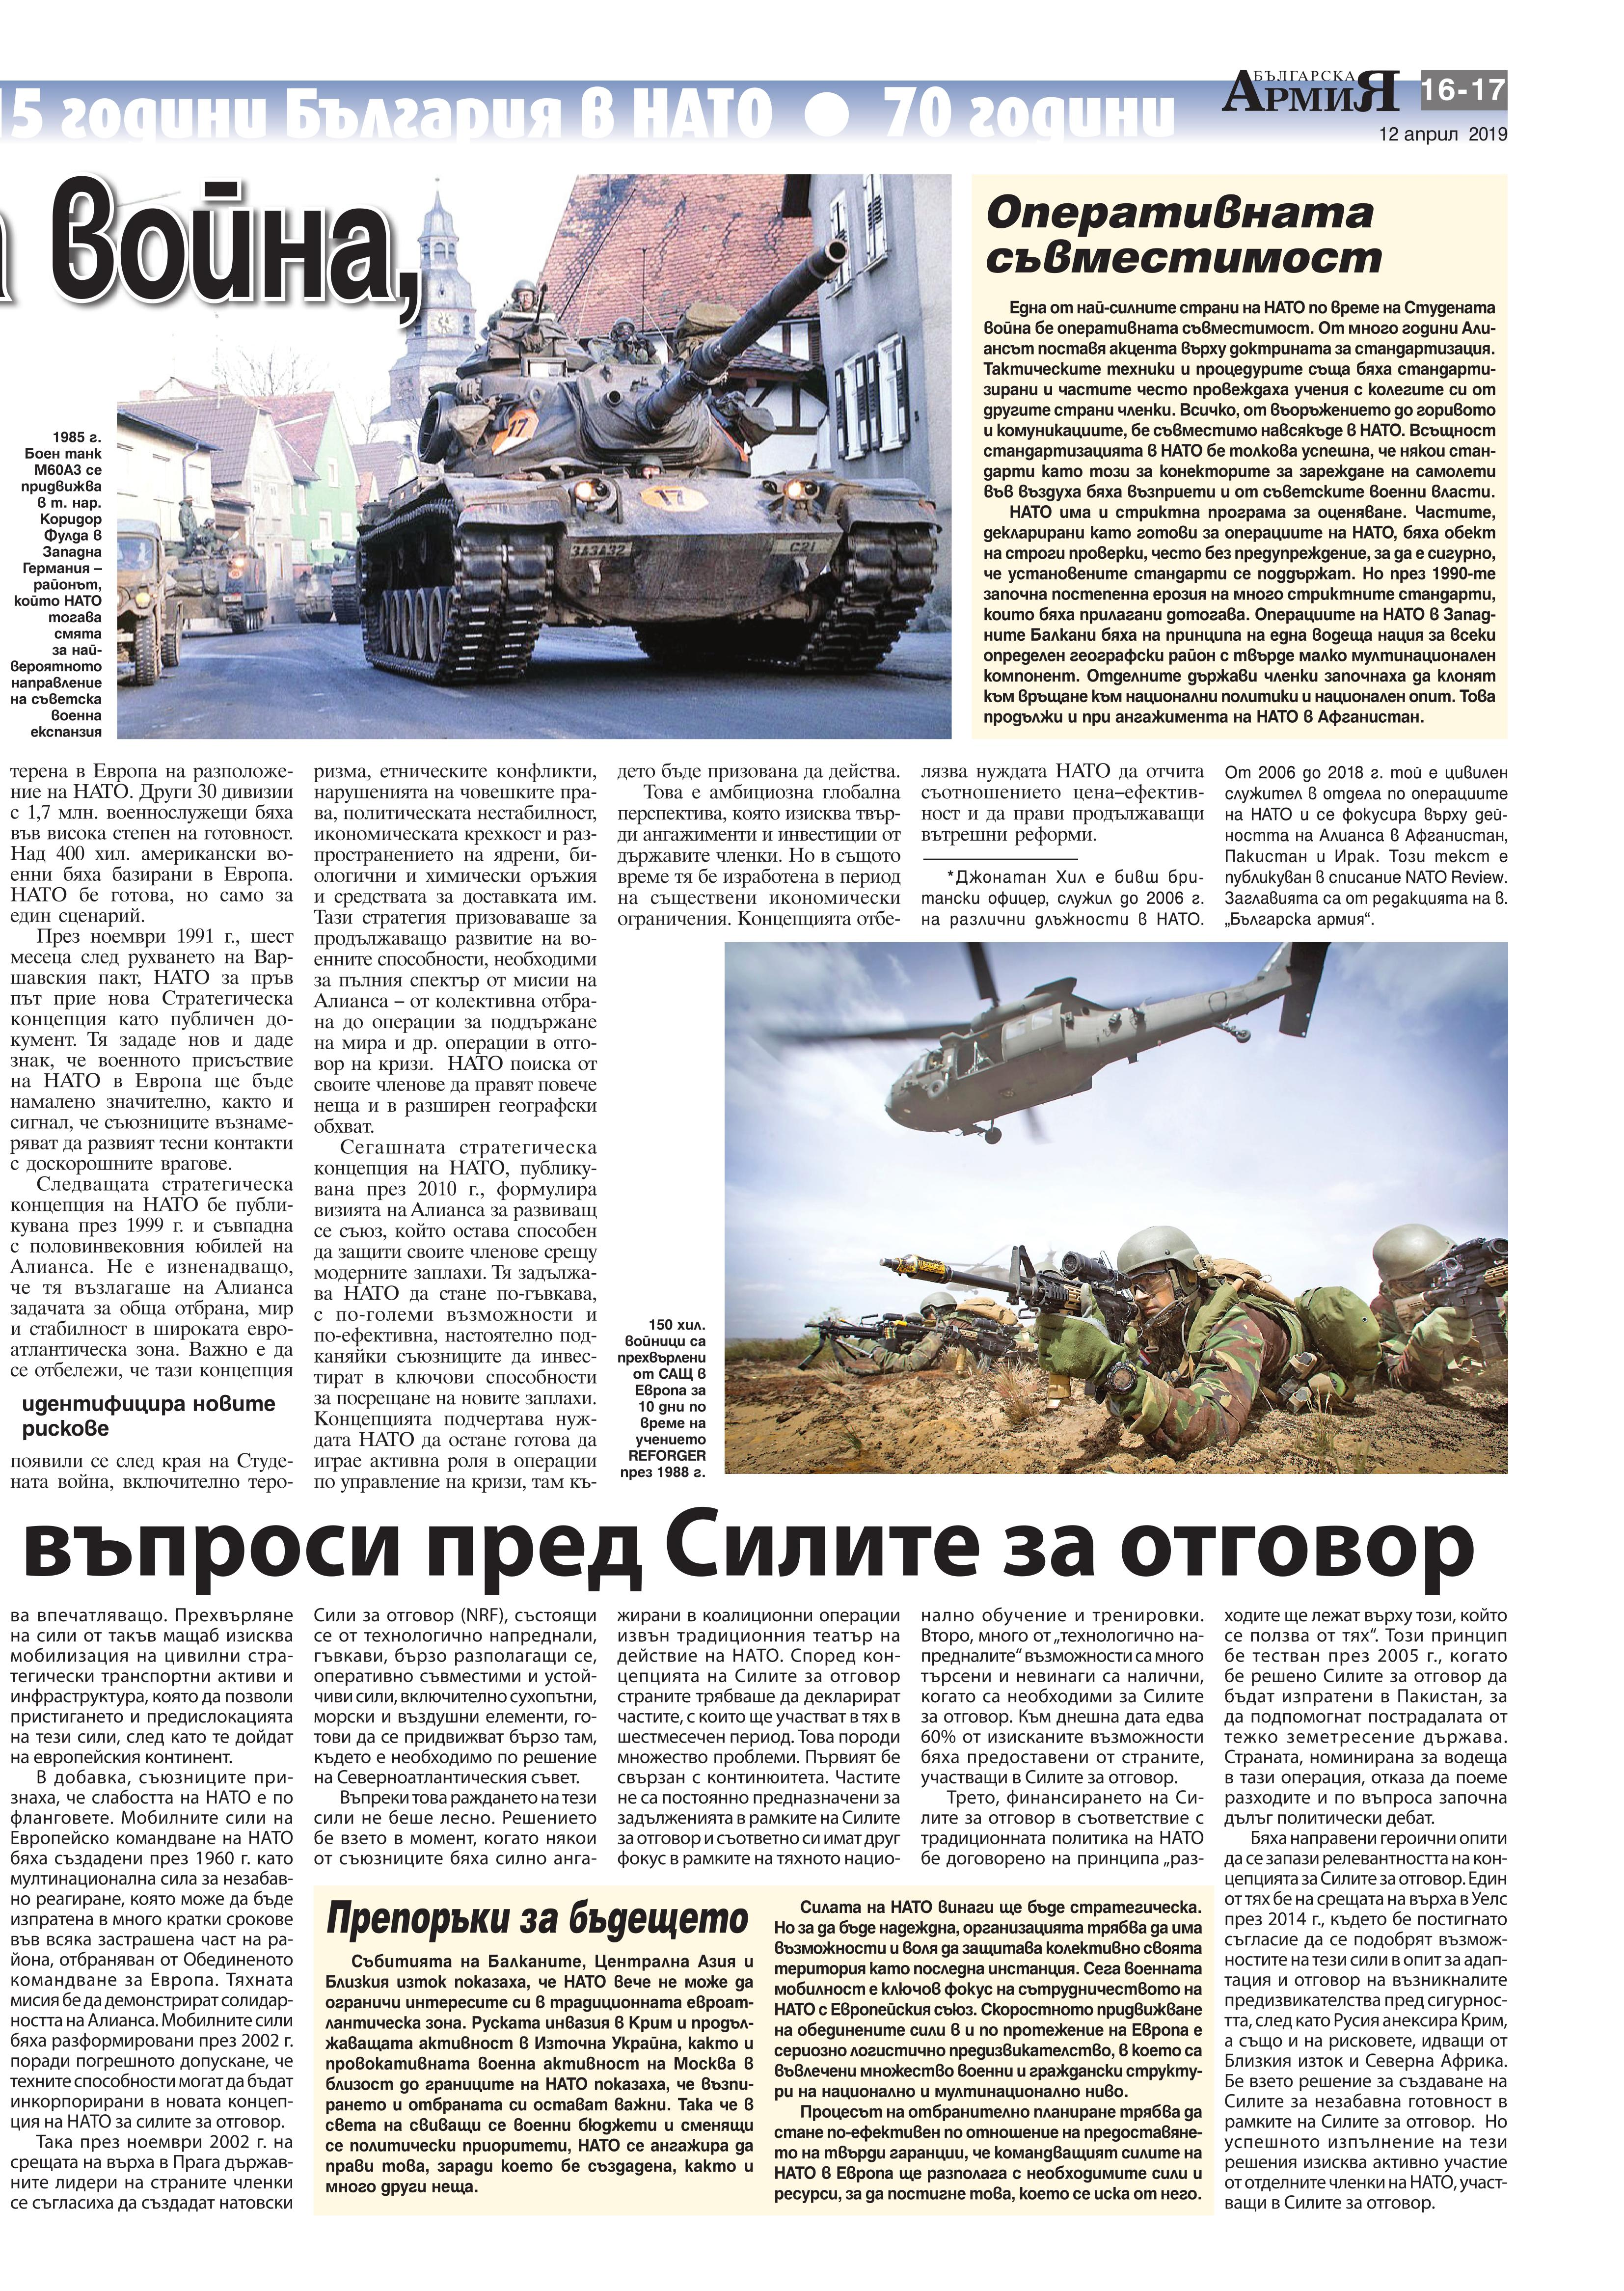 https://armymedia.bg/wp-content/uploads/2015/06/17.page1_-91.jpg